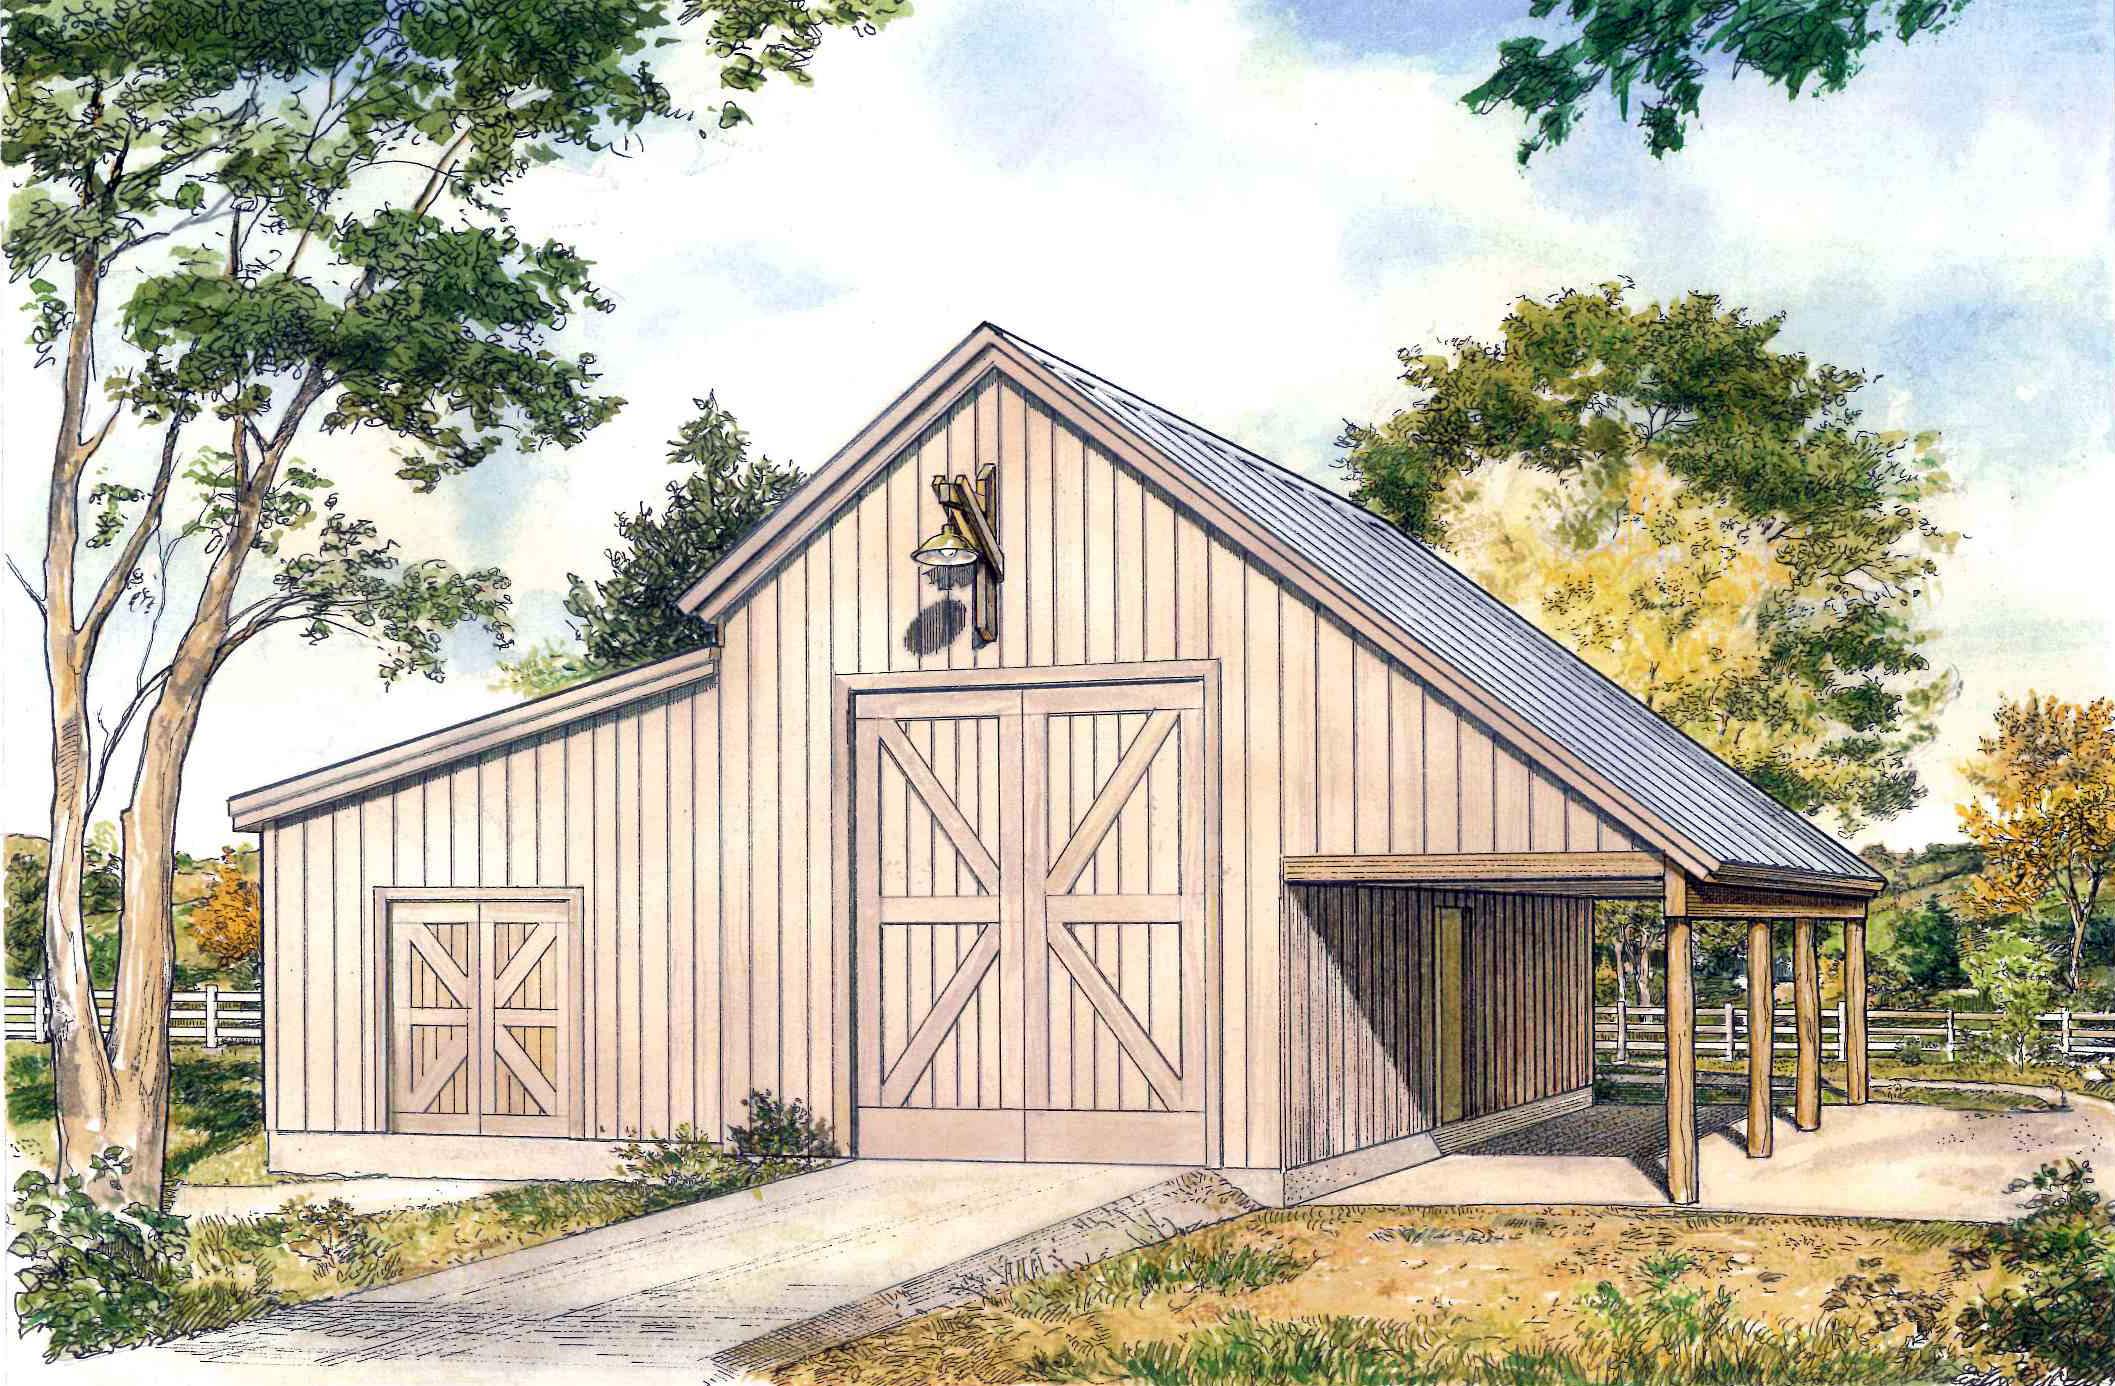 Rustic drive through garage 46060hc cad available pdf for Rustic garage plans